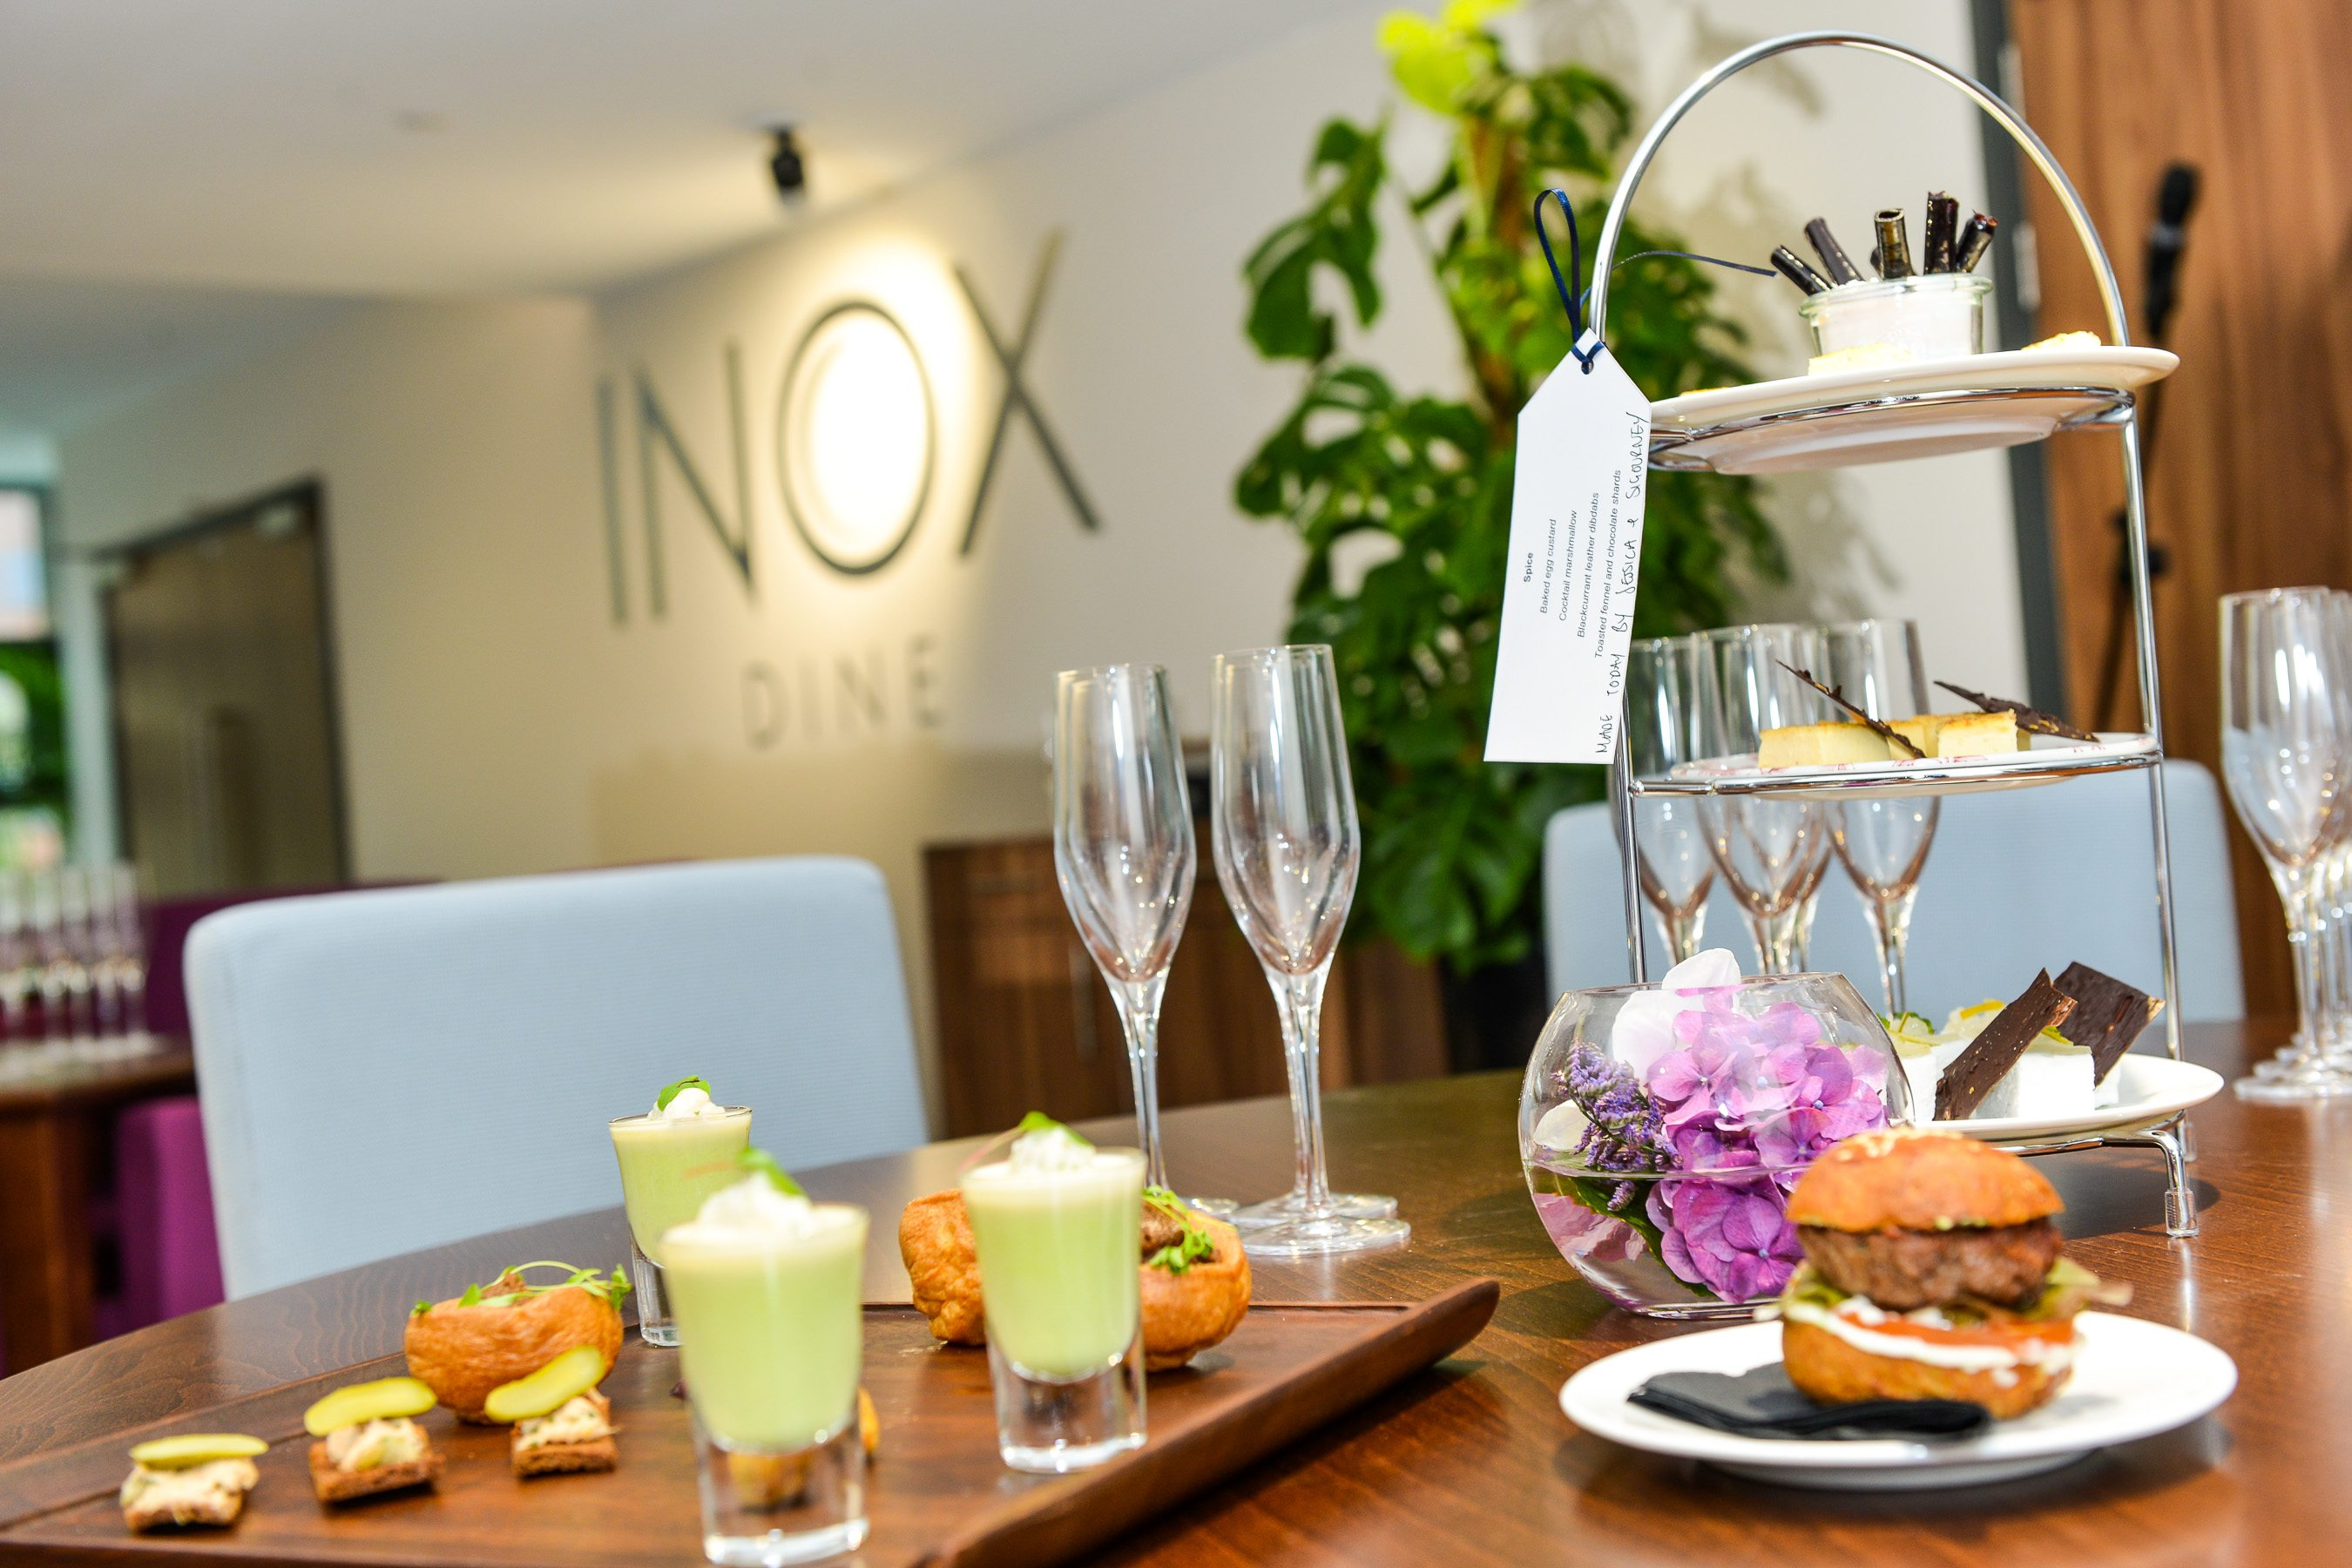 Inox Sheffield Afternoon Tea & Catered Events